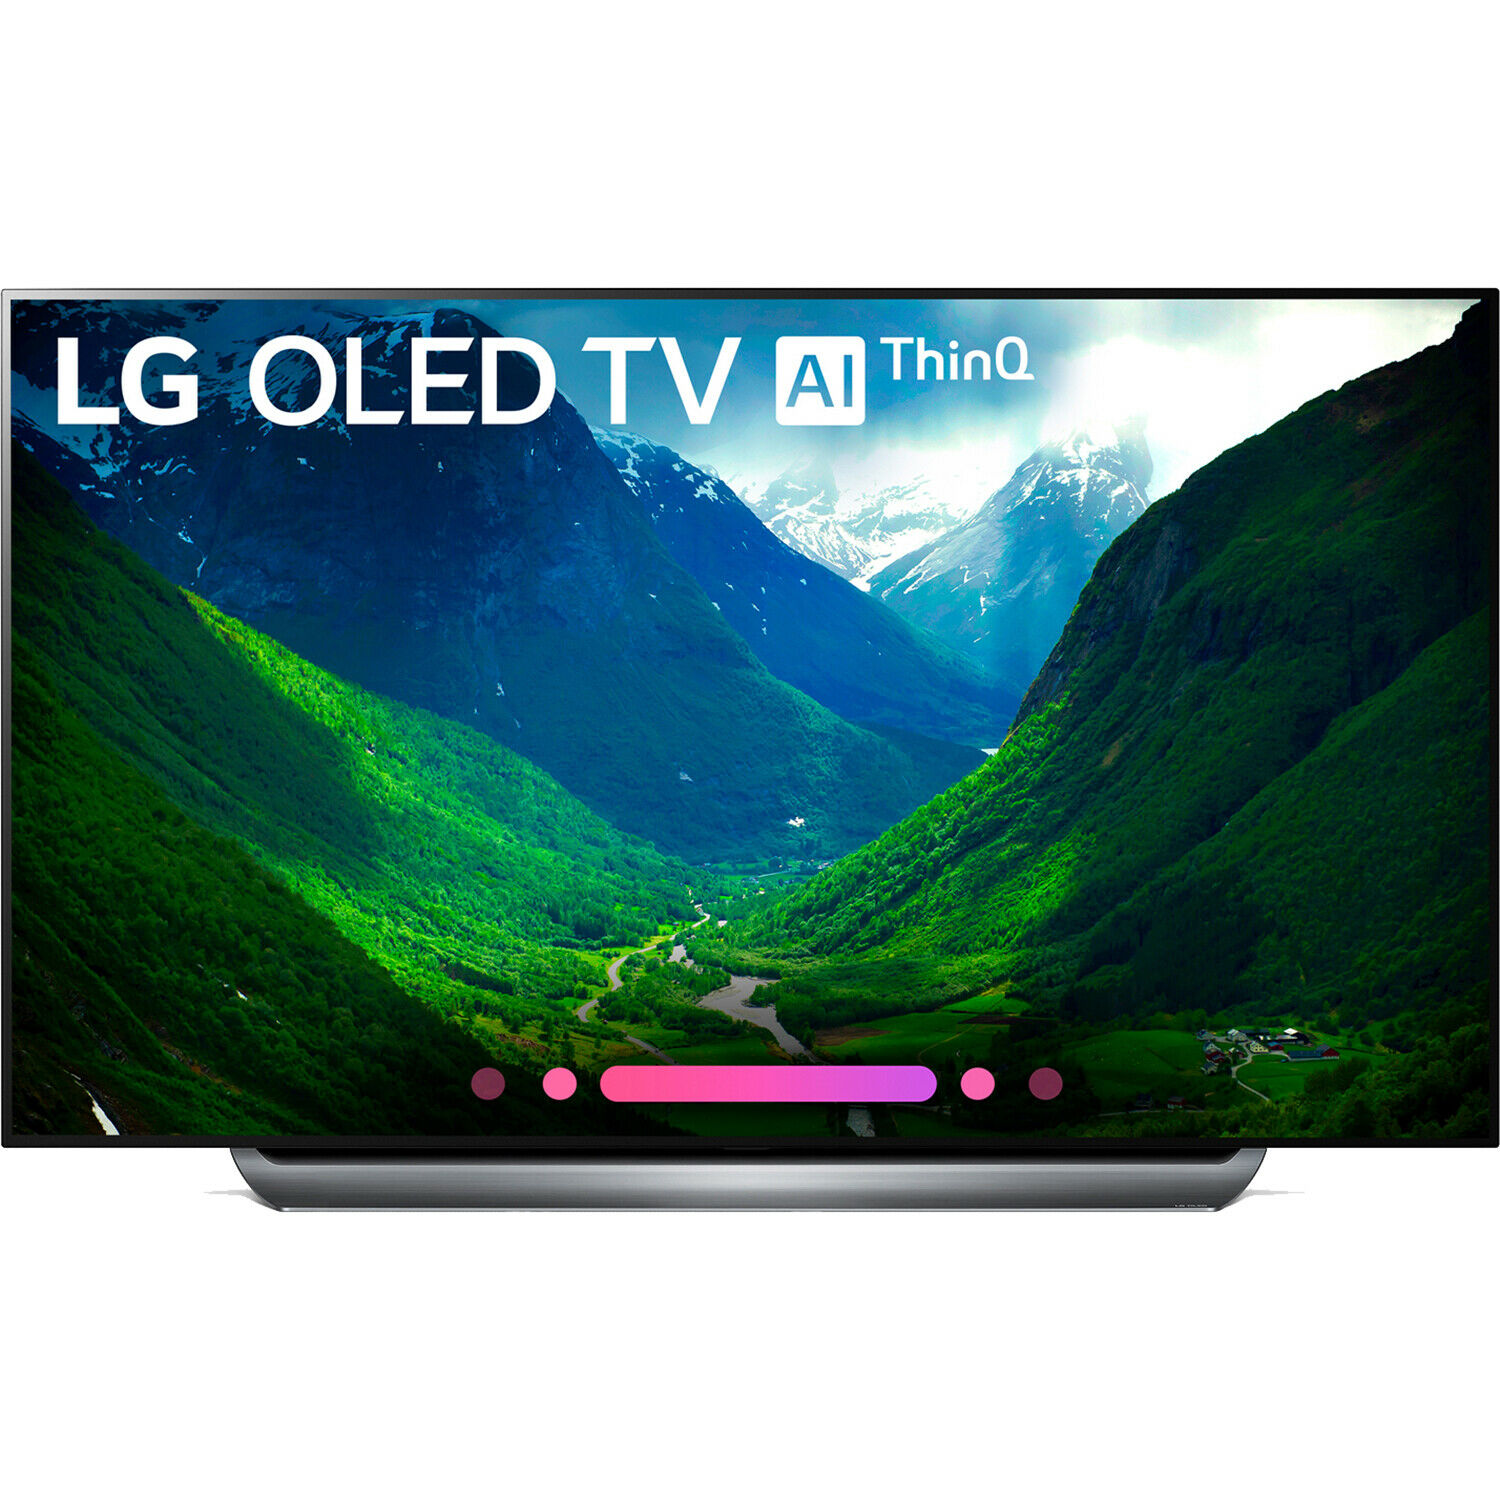 LG OLED77C8PUA 77 Class C8 OLED 4K HDR AI Smart TV (2018 Model). Available Now for 2899.00